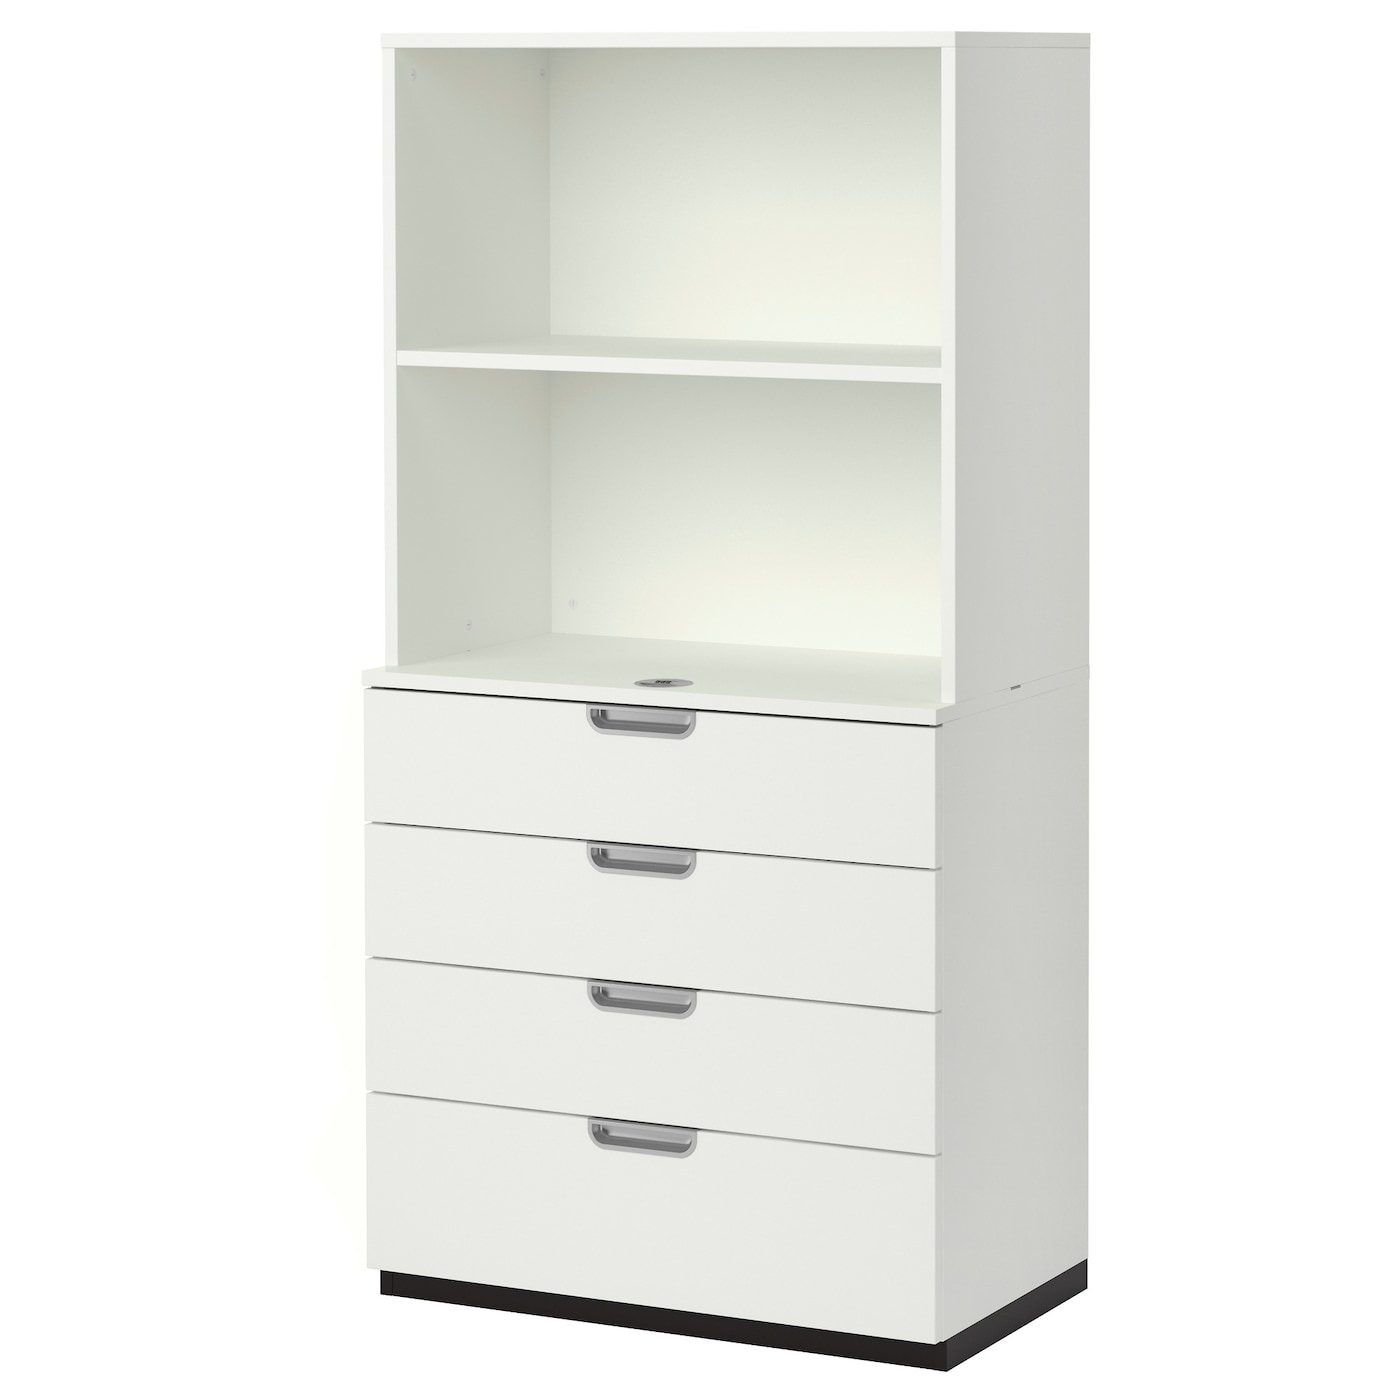 ikea storage office. IKEA GALANT Storage Combination With Drawers Ikea Office (